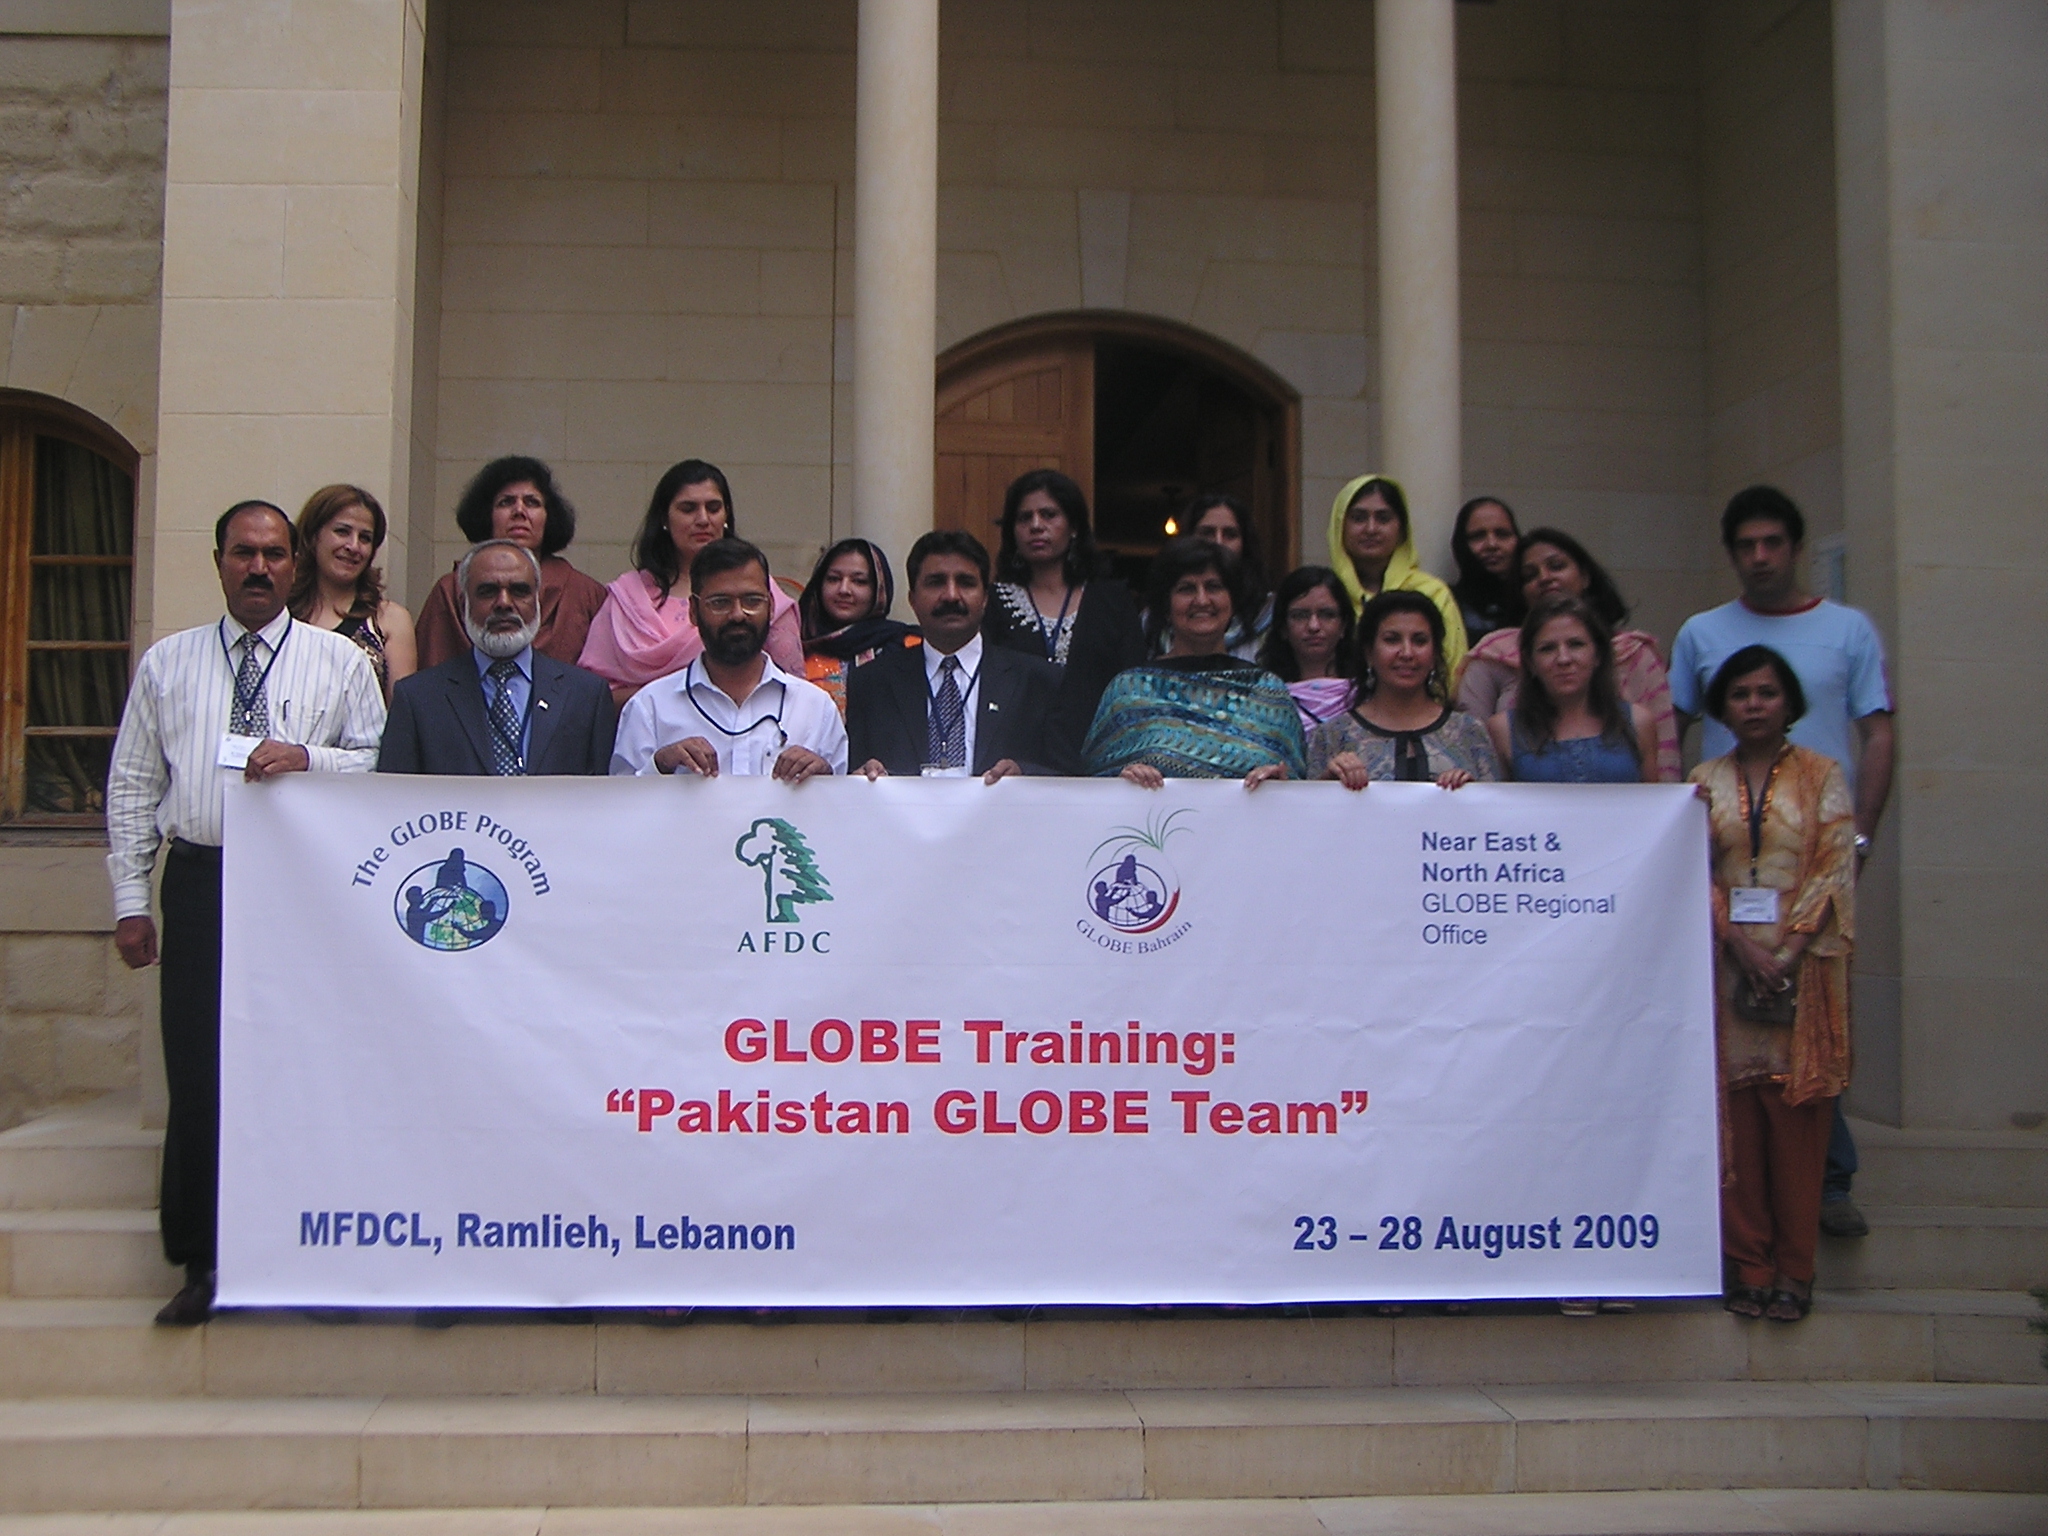 Pakistan joined the GLOBE Program